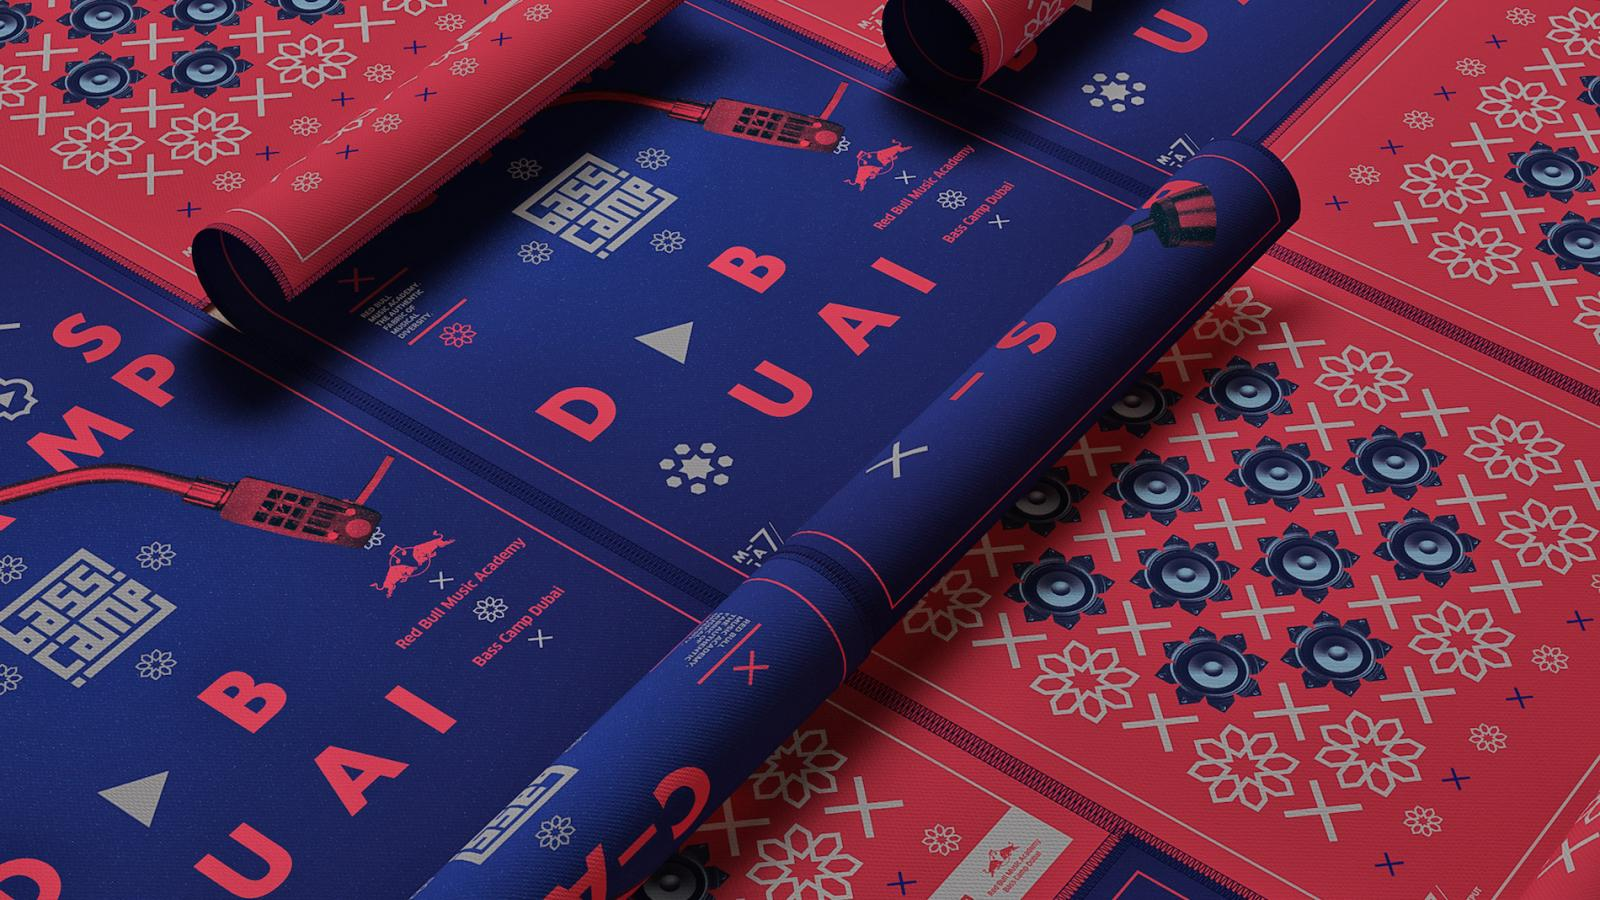 Poster Design for Red Bull Music Academy Bass Camp Dubai